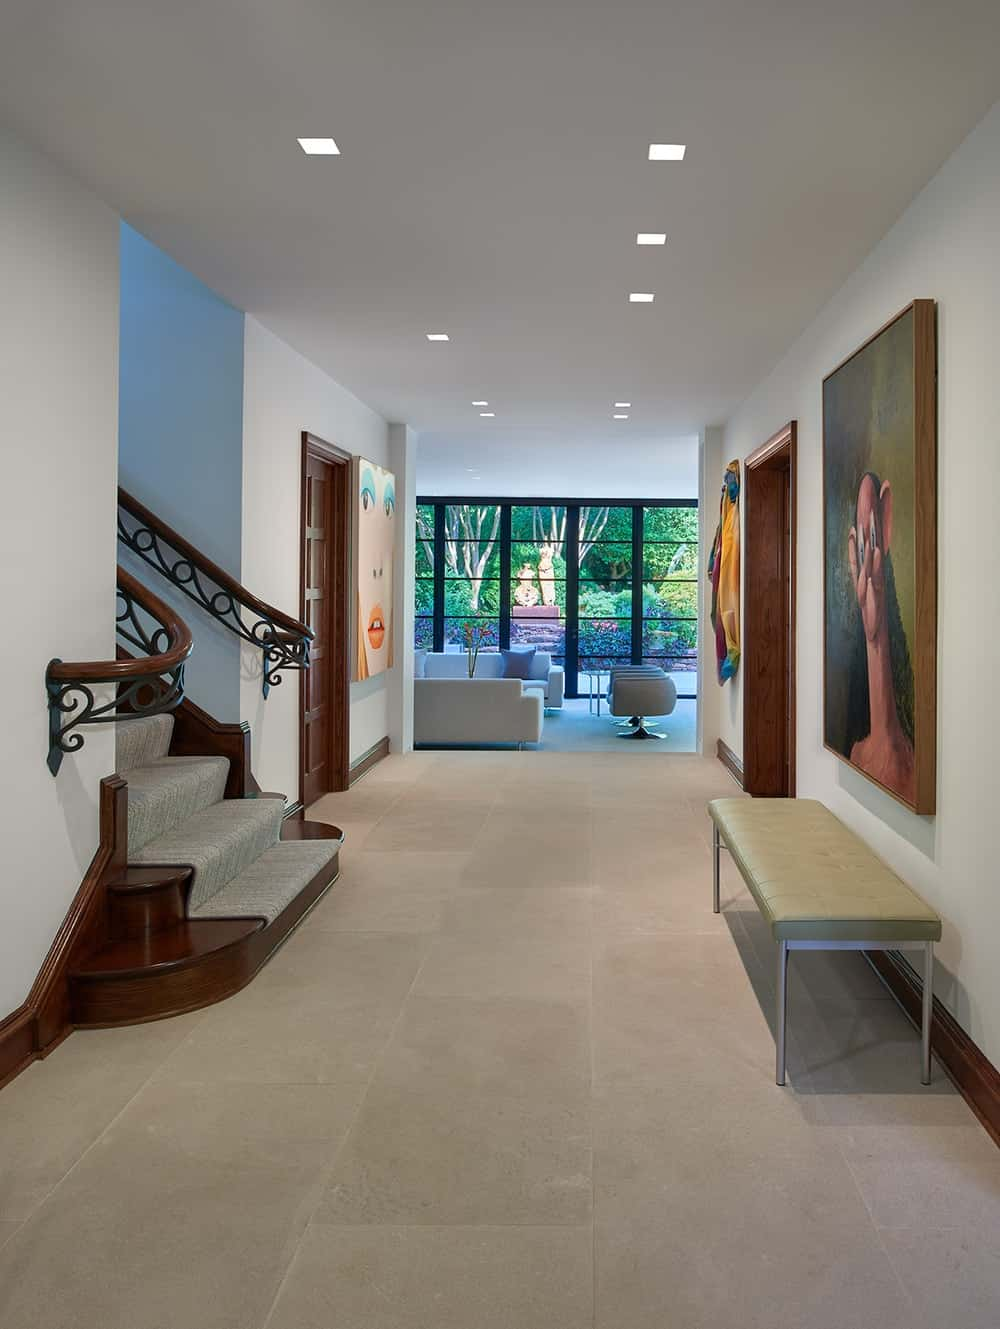 Upon entry of the house, you are welcomed by this foyer that has a cushioned bench under a large painting across from the foot of the stairs.